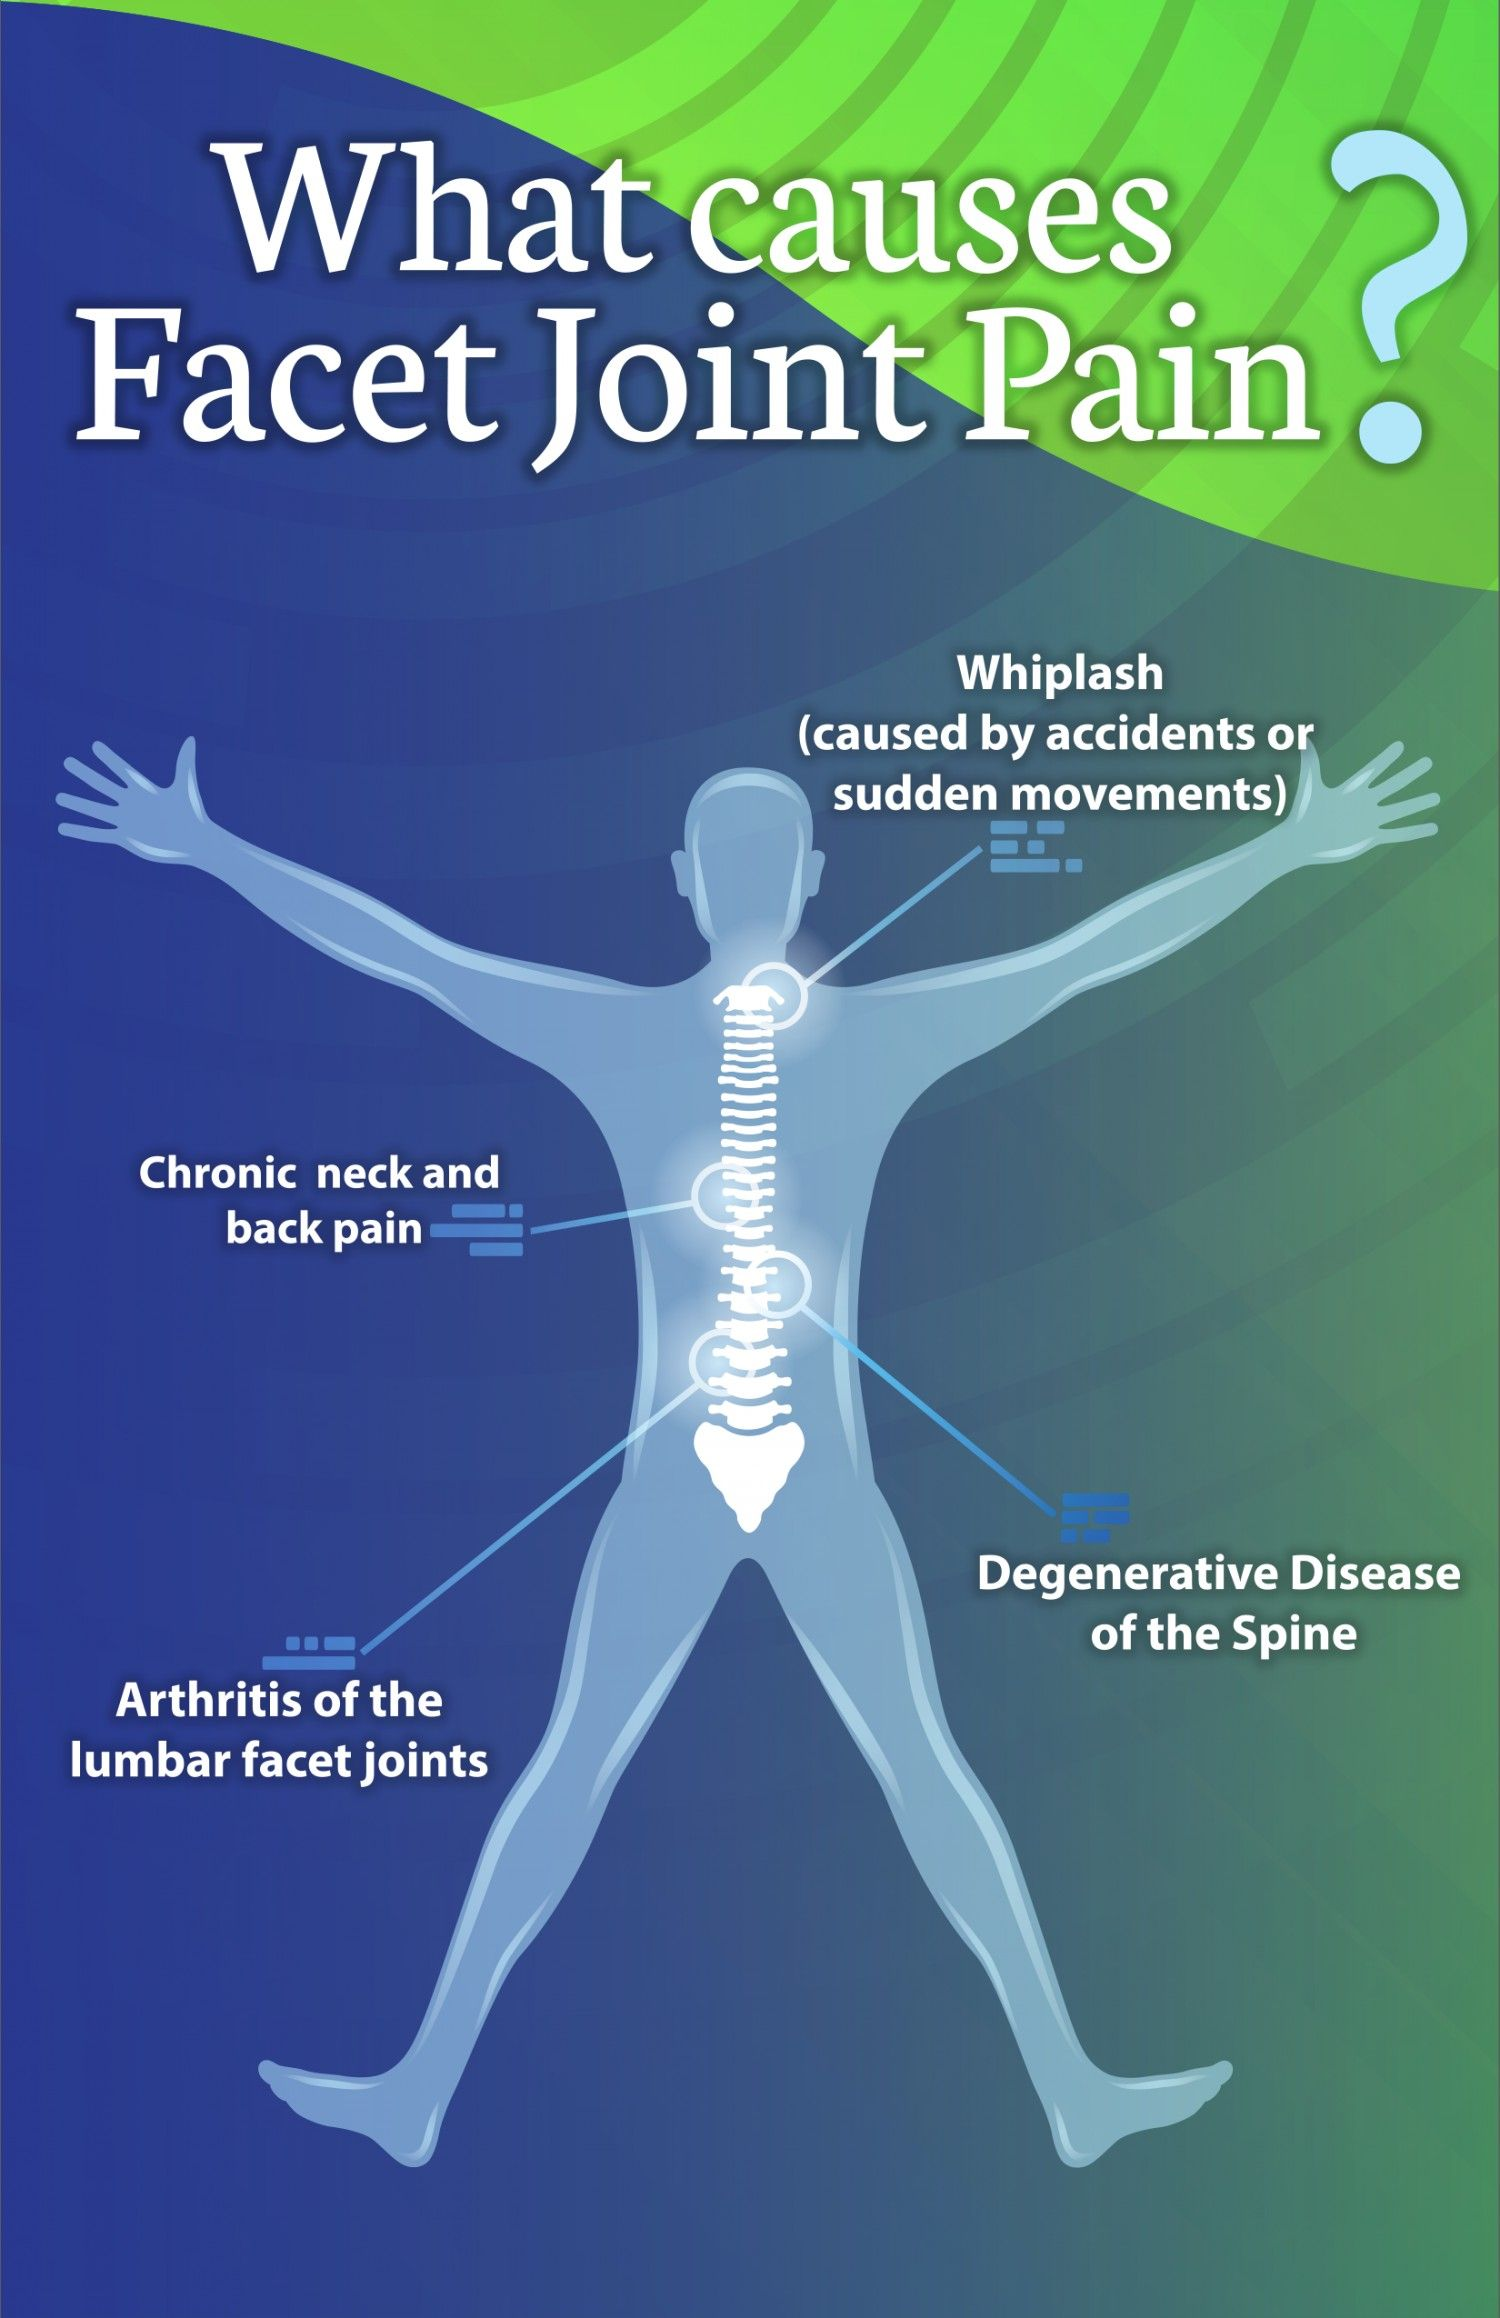 medium resolution of what causes facet joint pain jointpain facetjoint infographic